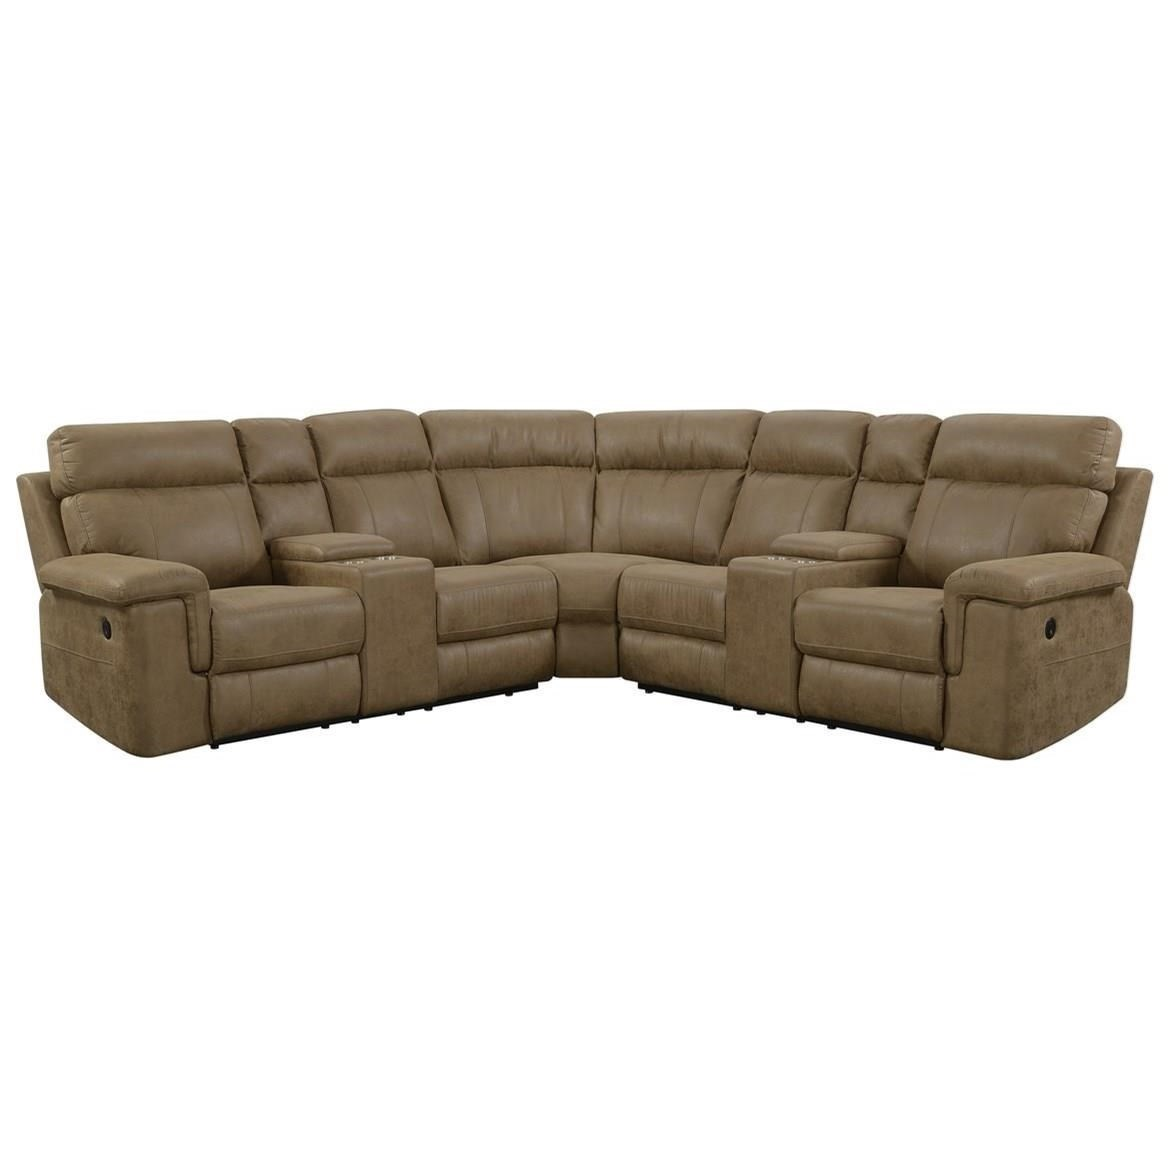 4 seat power reclining sectional sofa